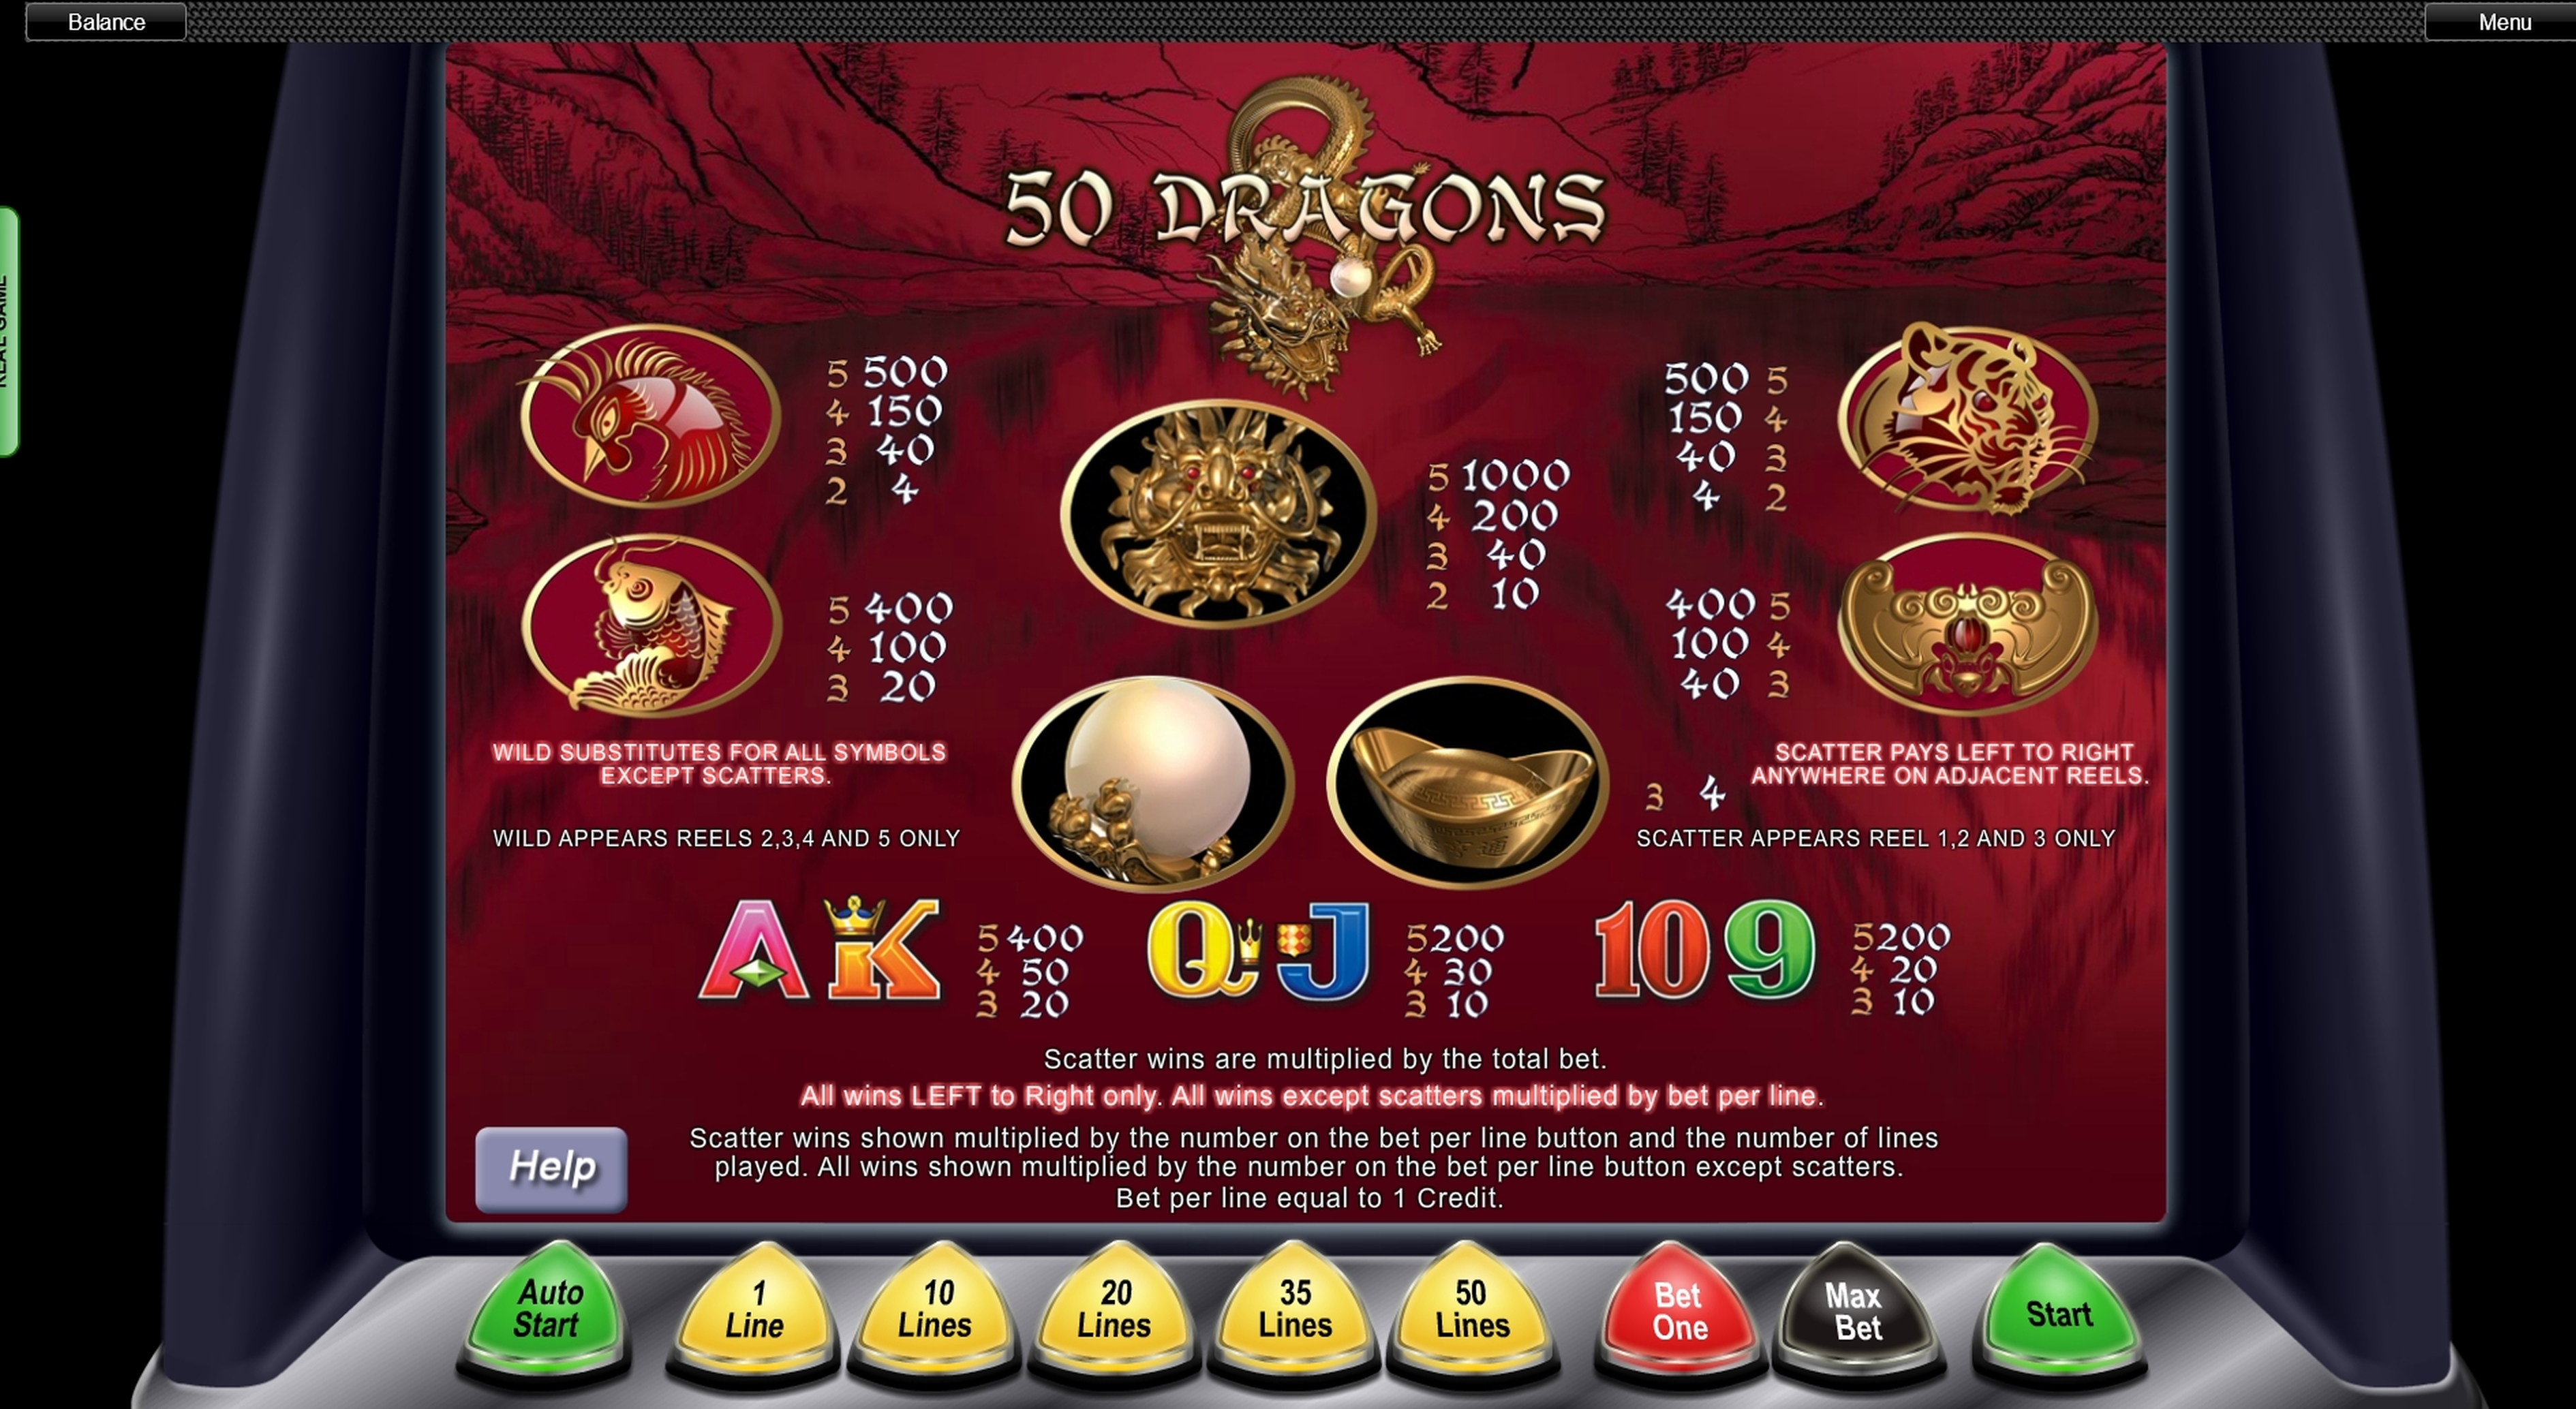 Info of 50 Dragons Slot Game by Aristocrat